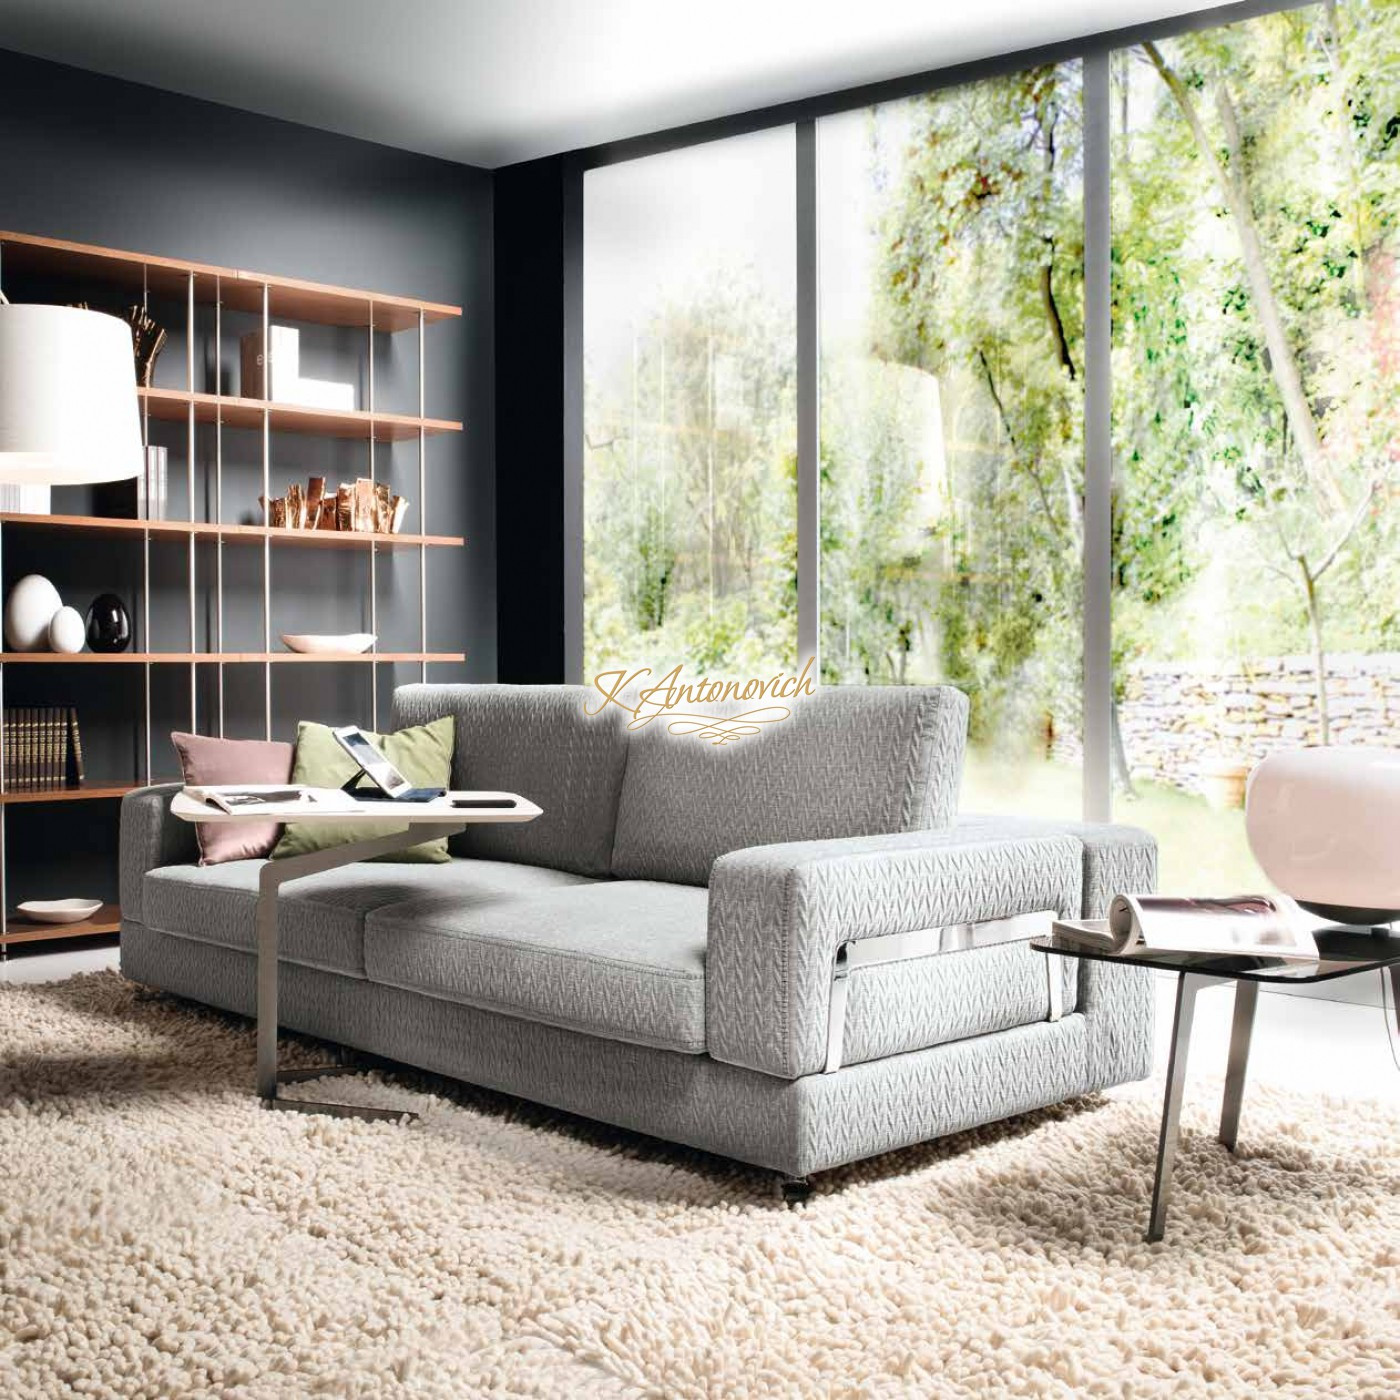 Modern Contemporary Living Room Furniture  Modern italian living room furniture luxury interior